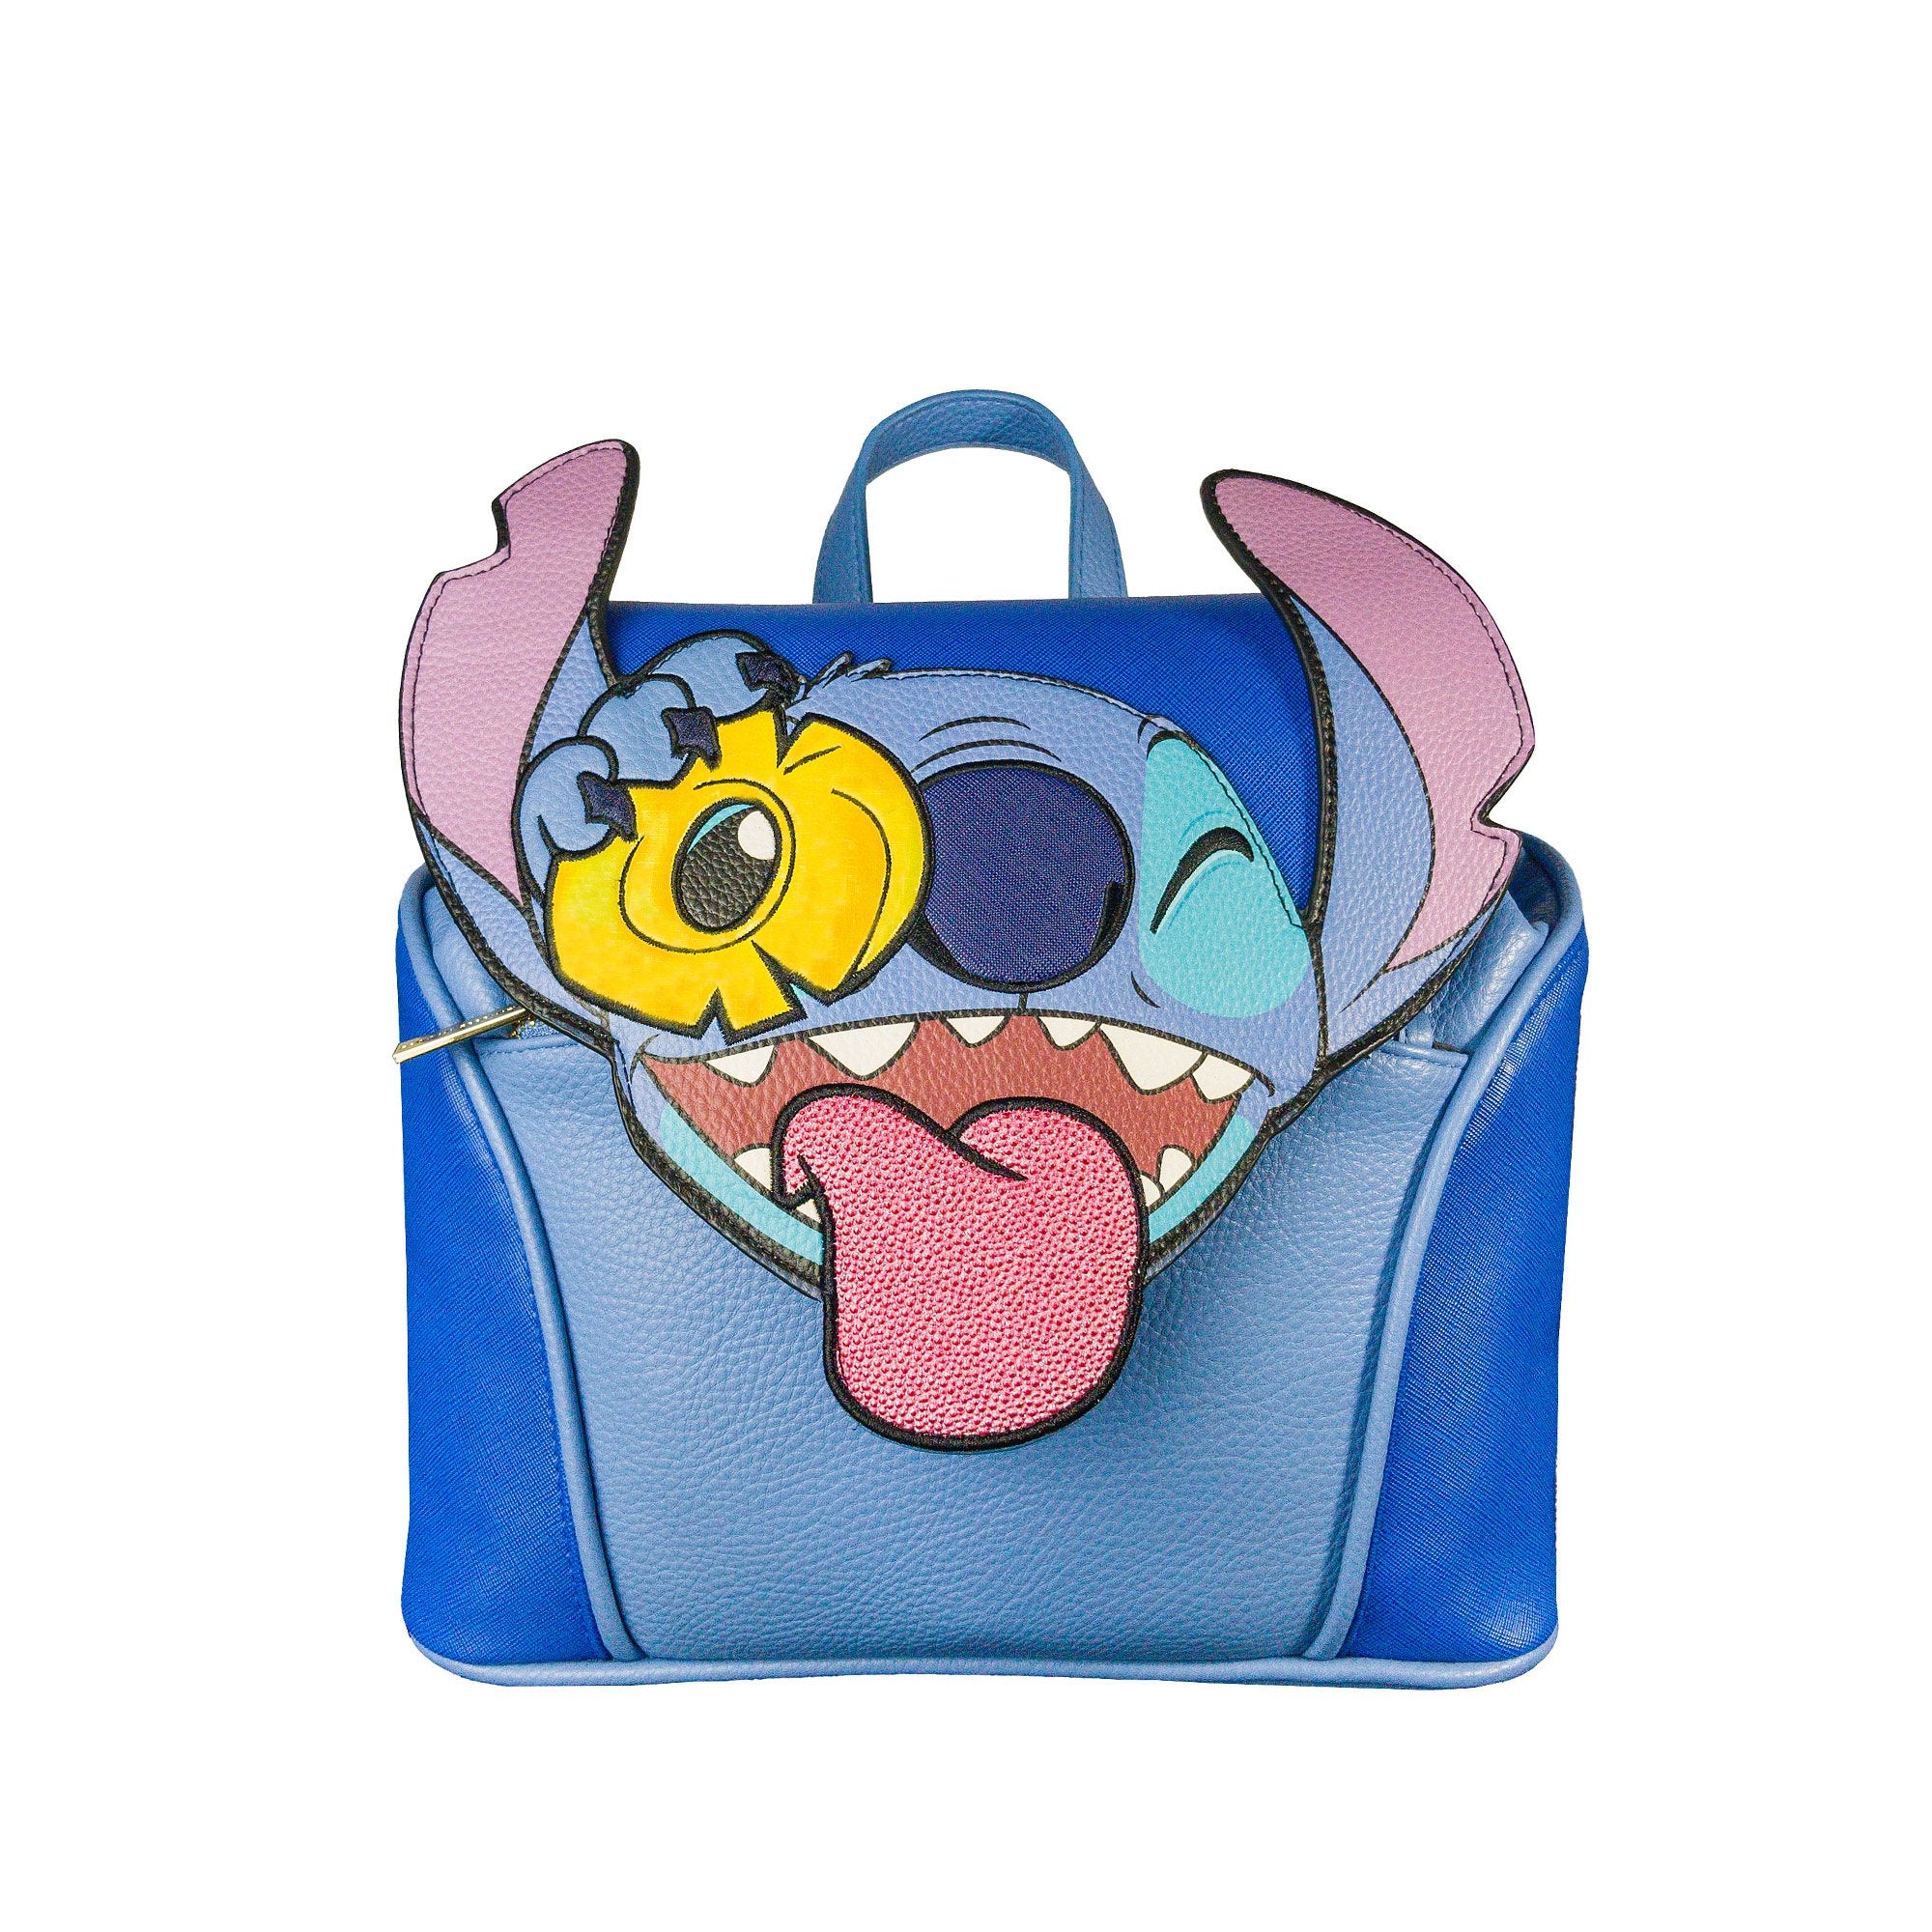 Lilo & Stitch Backpack - Pineapple